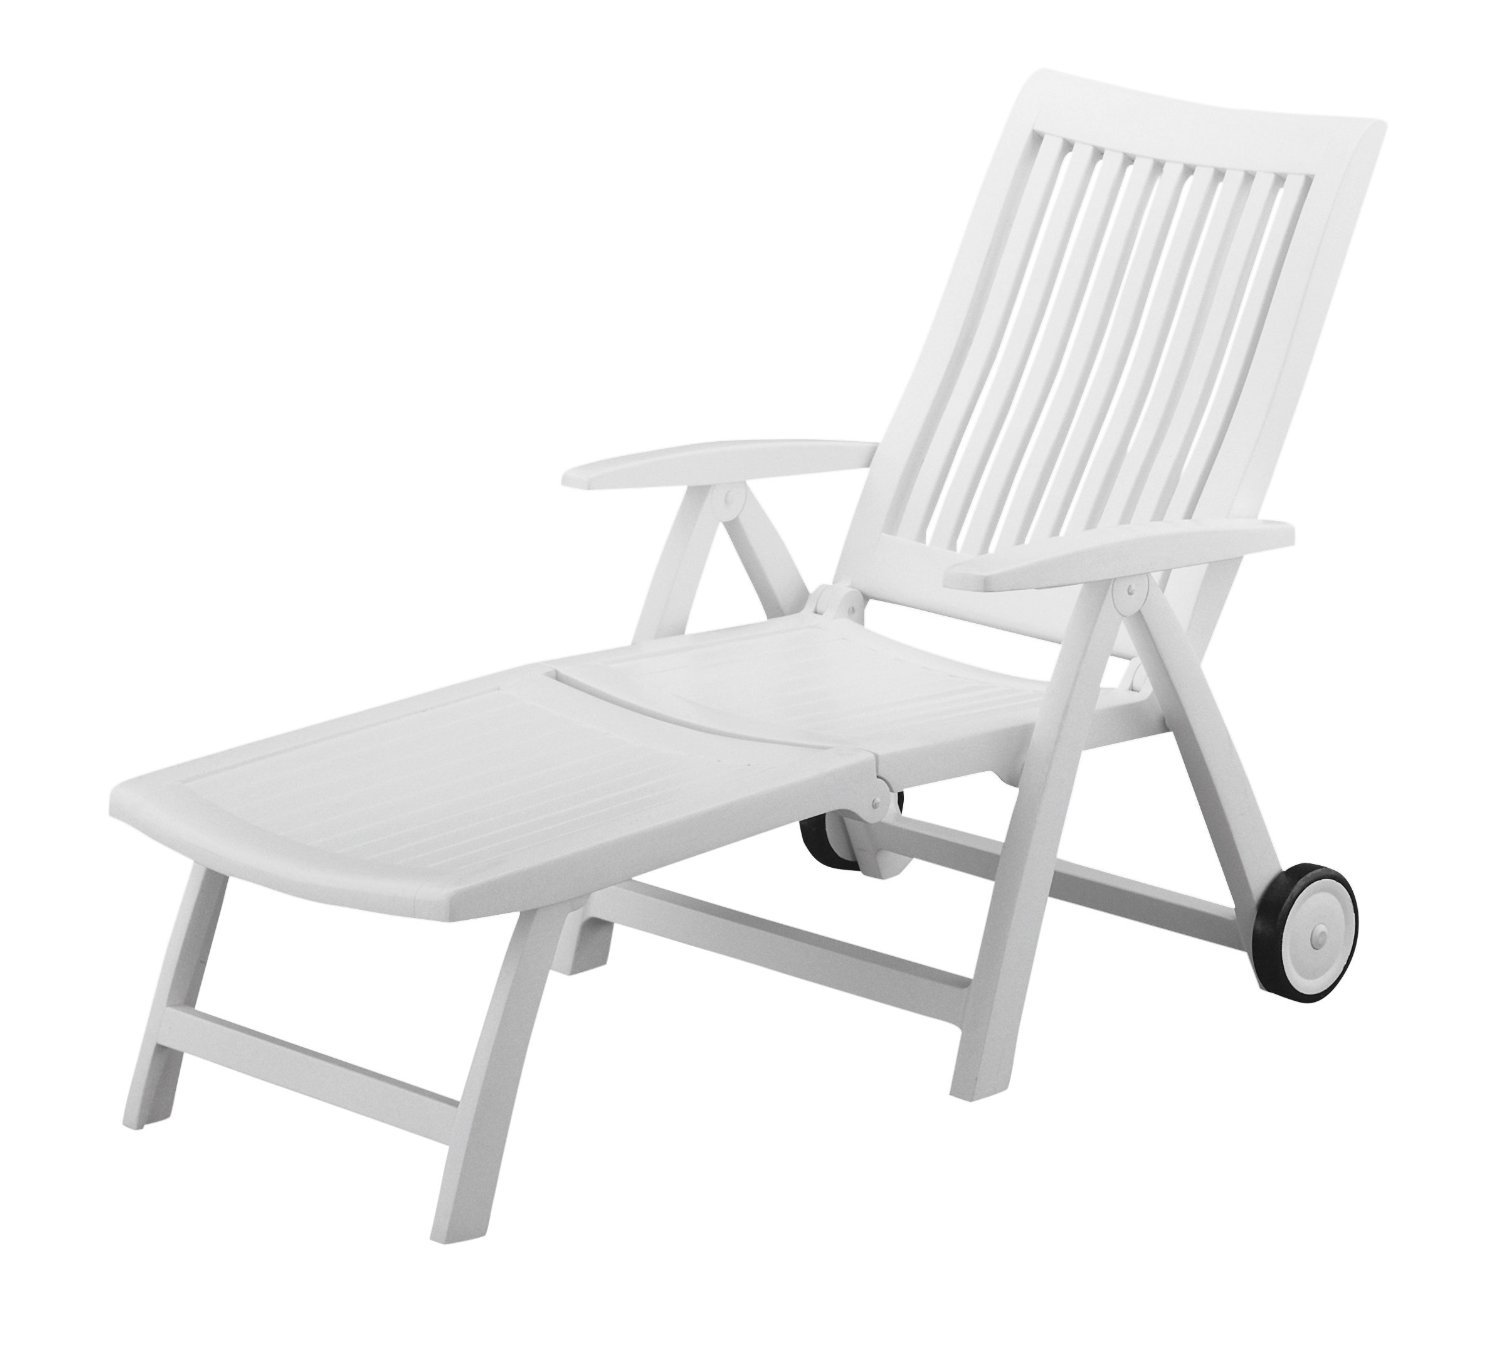 outdoor yard recliner chairs chaise aluminum folding chair deluxe beach pool patio lounge sundale